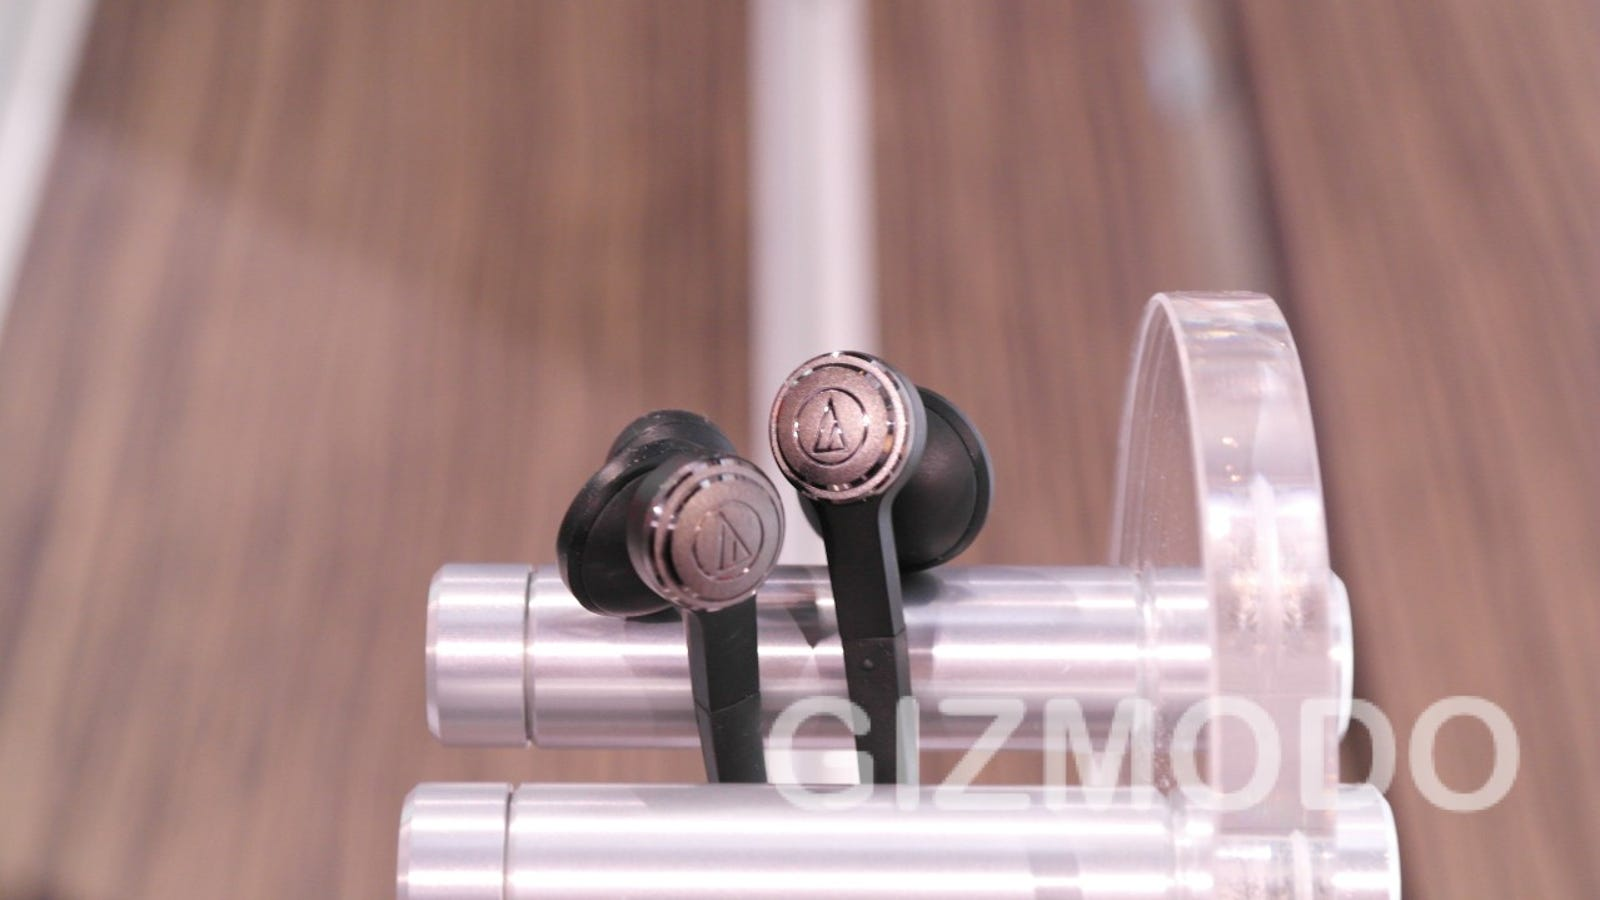 xiomi earbuds originals